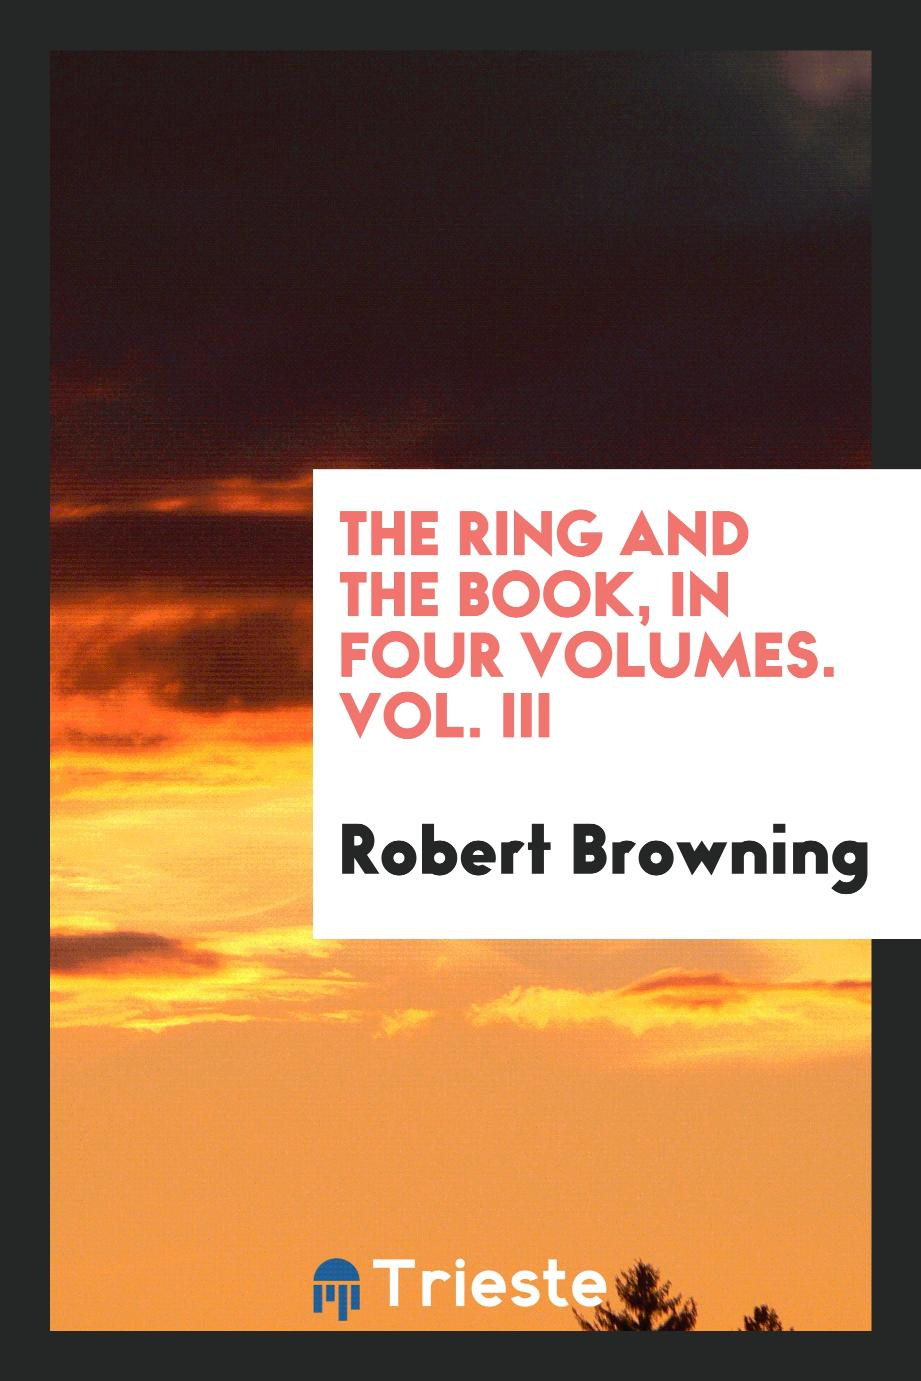 The ring and the book, in four volumes. Vol. III